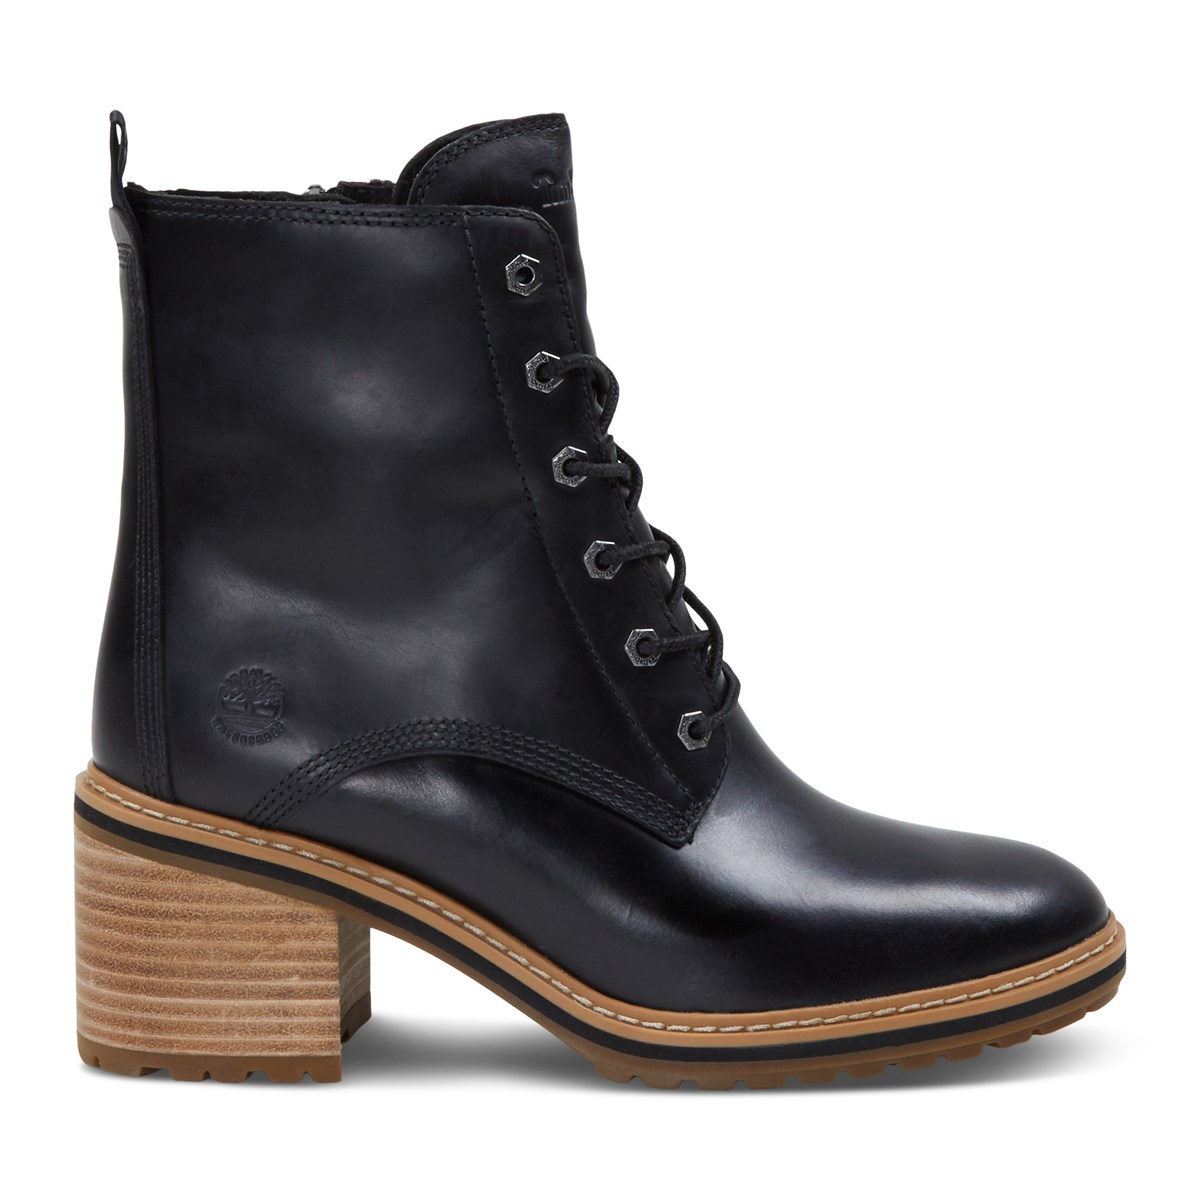 Women's Sienna Heeled Lace/Up Boots in Black